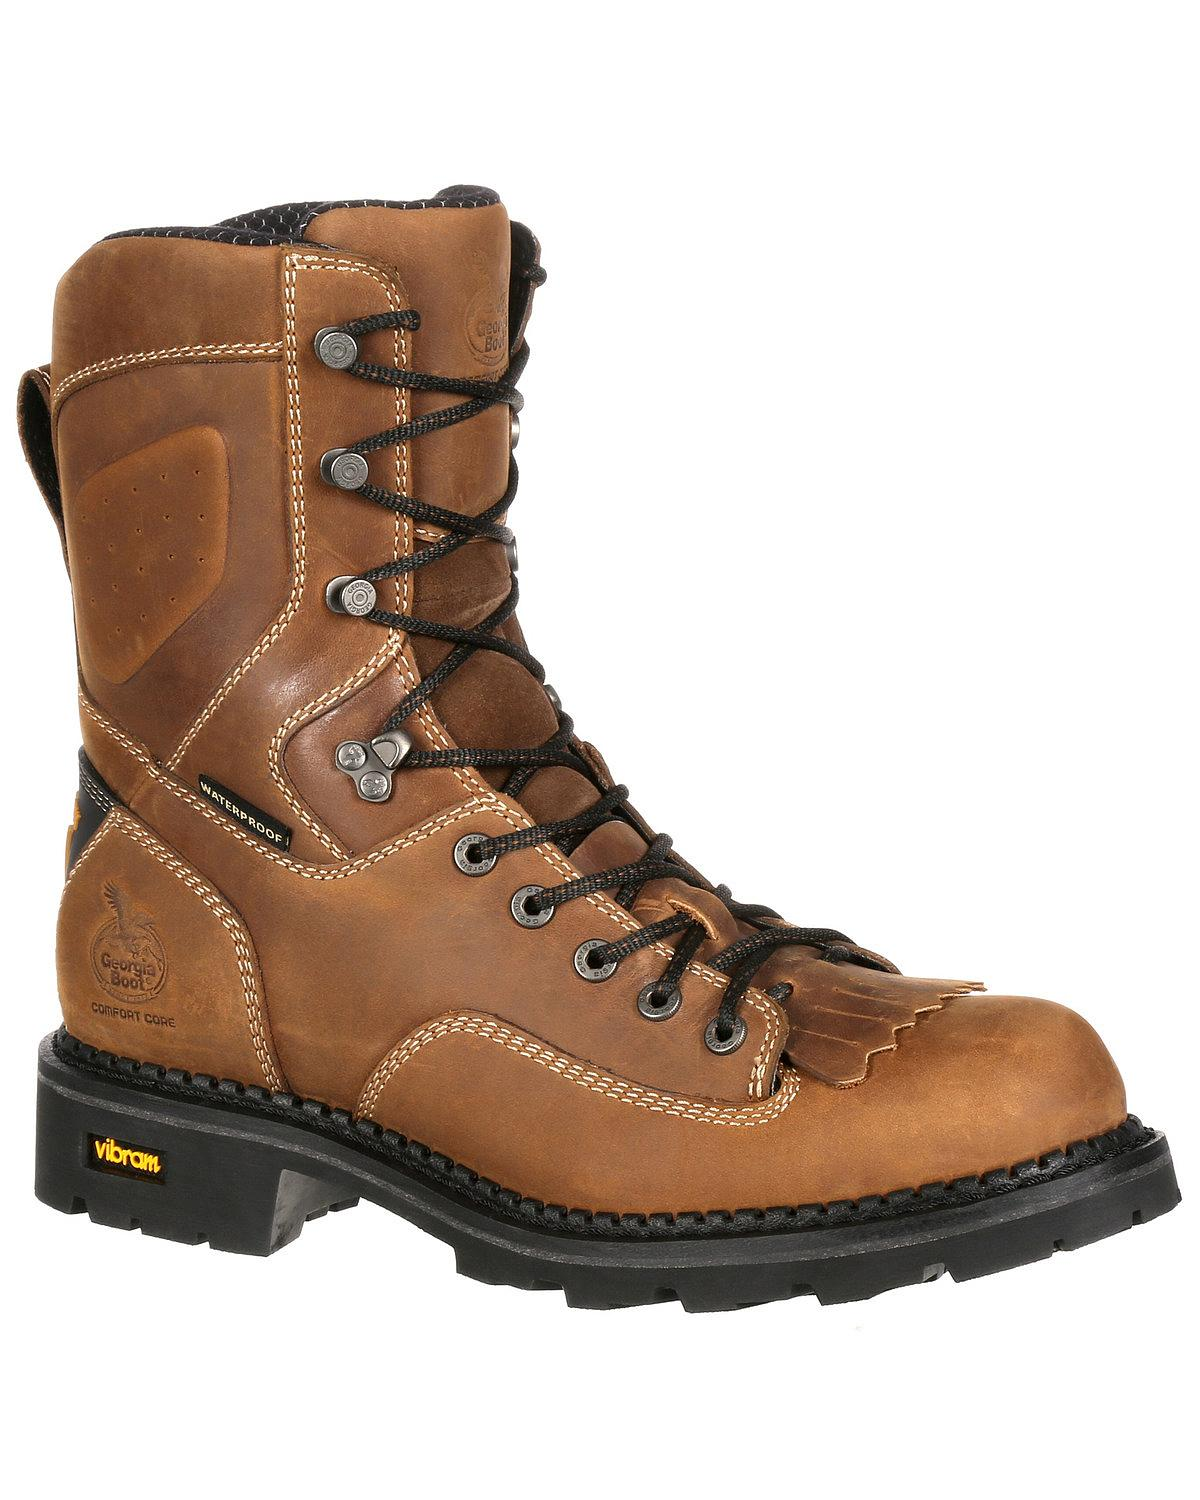 Bota de Hombre Confort Core Georgia Impermeable Logger bota-Soft Toe-GB00122